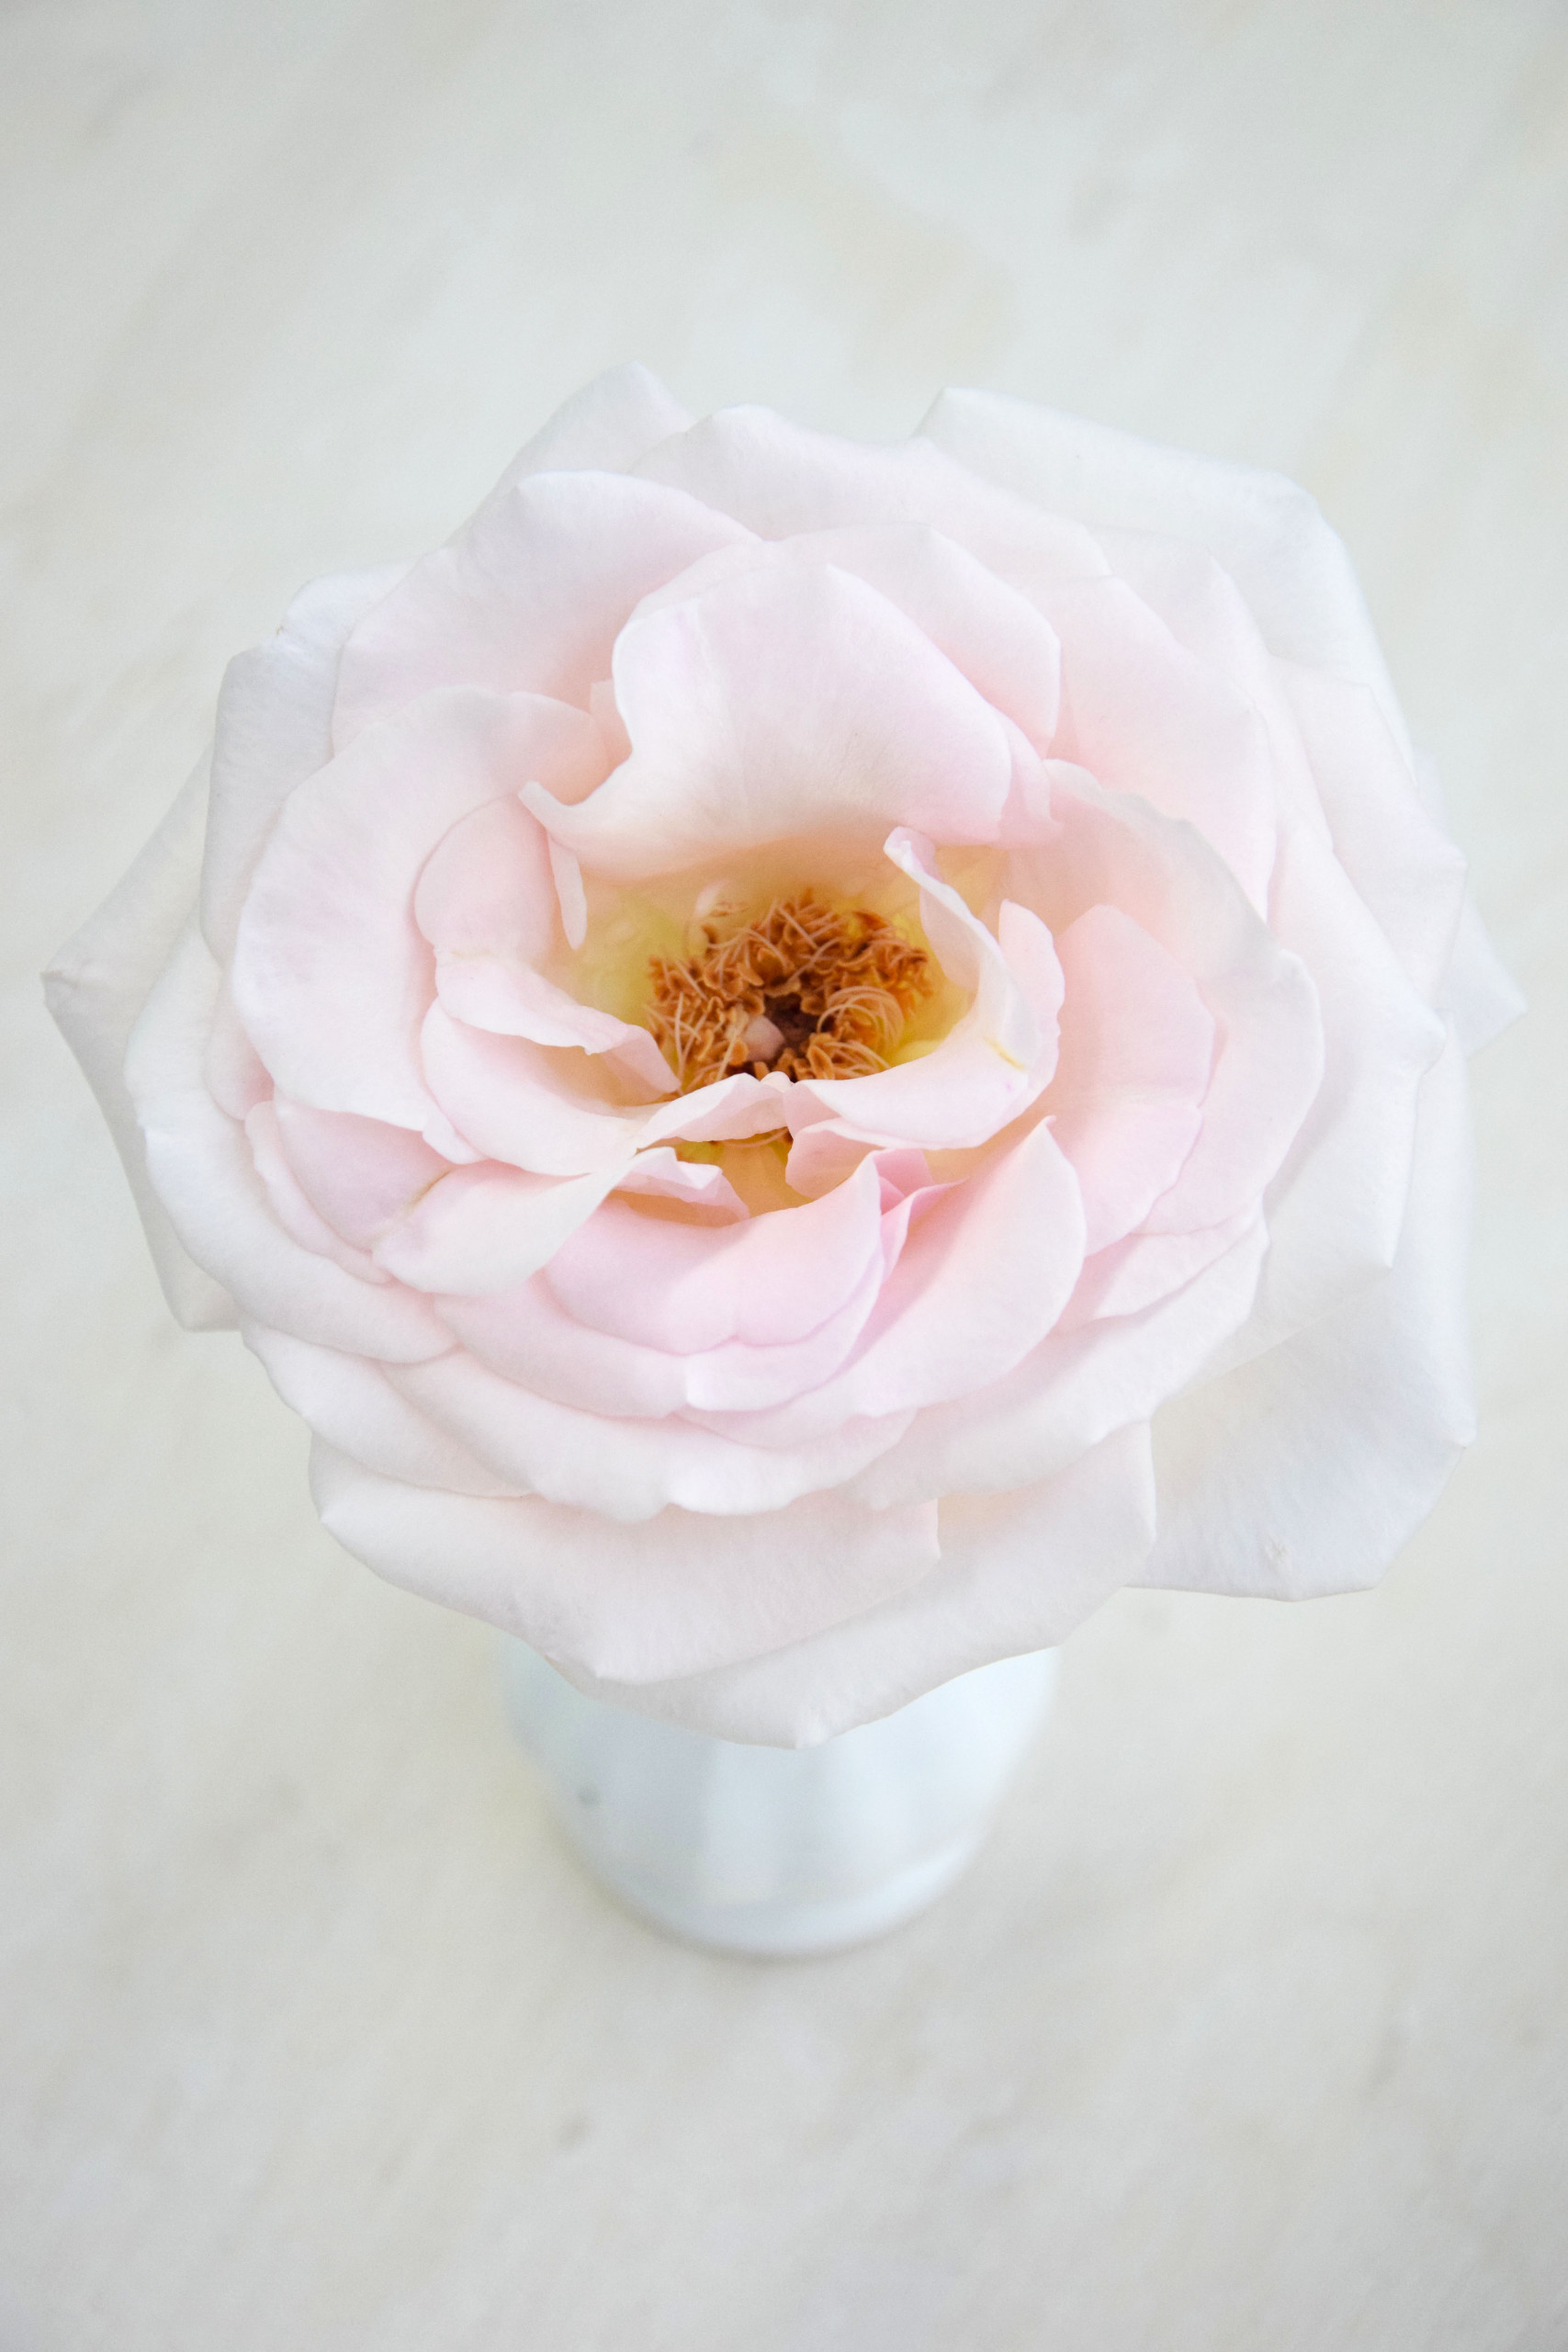 With a diameter of roughly 12 centimeters, the scented rose Prince Jardinier is a top pick of many florists and floral designers.